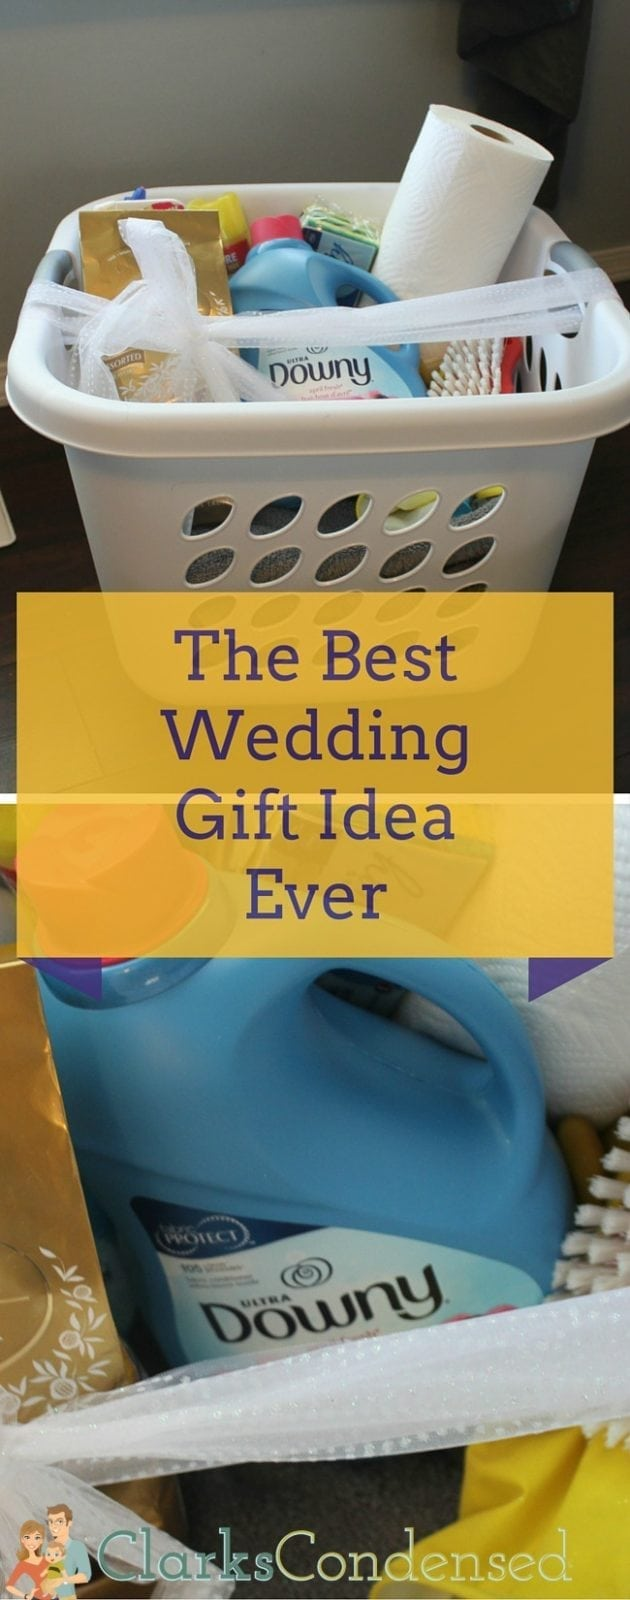 Great Wedding Gift: The Best Wedding Gift Idea Ever